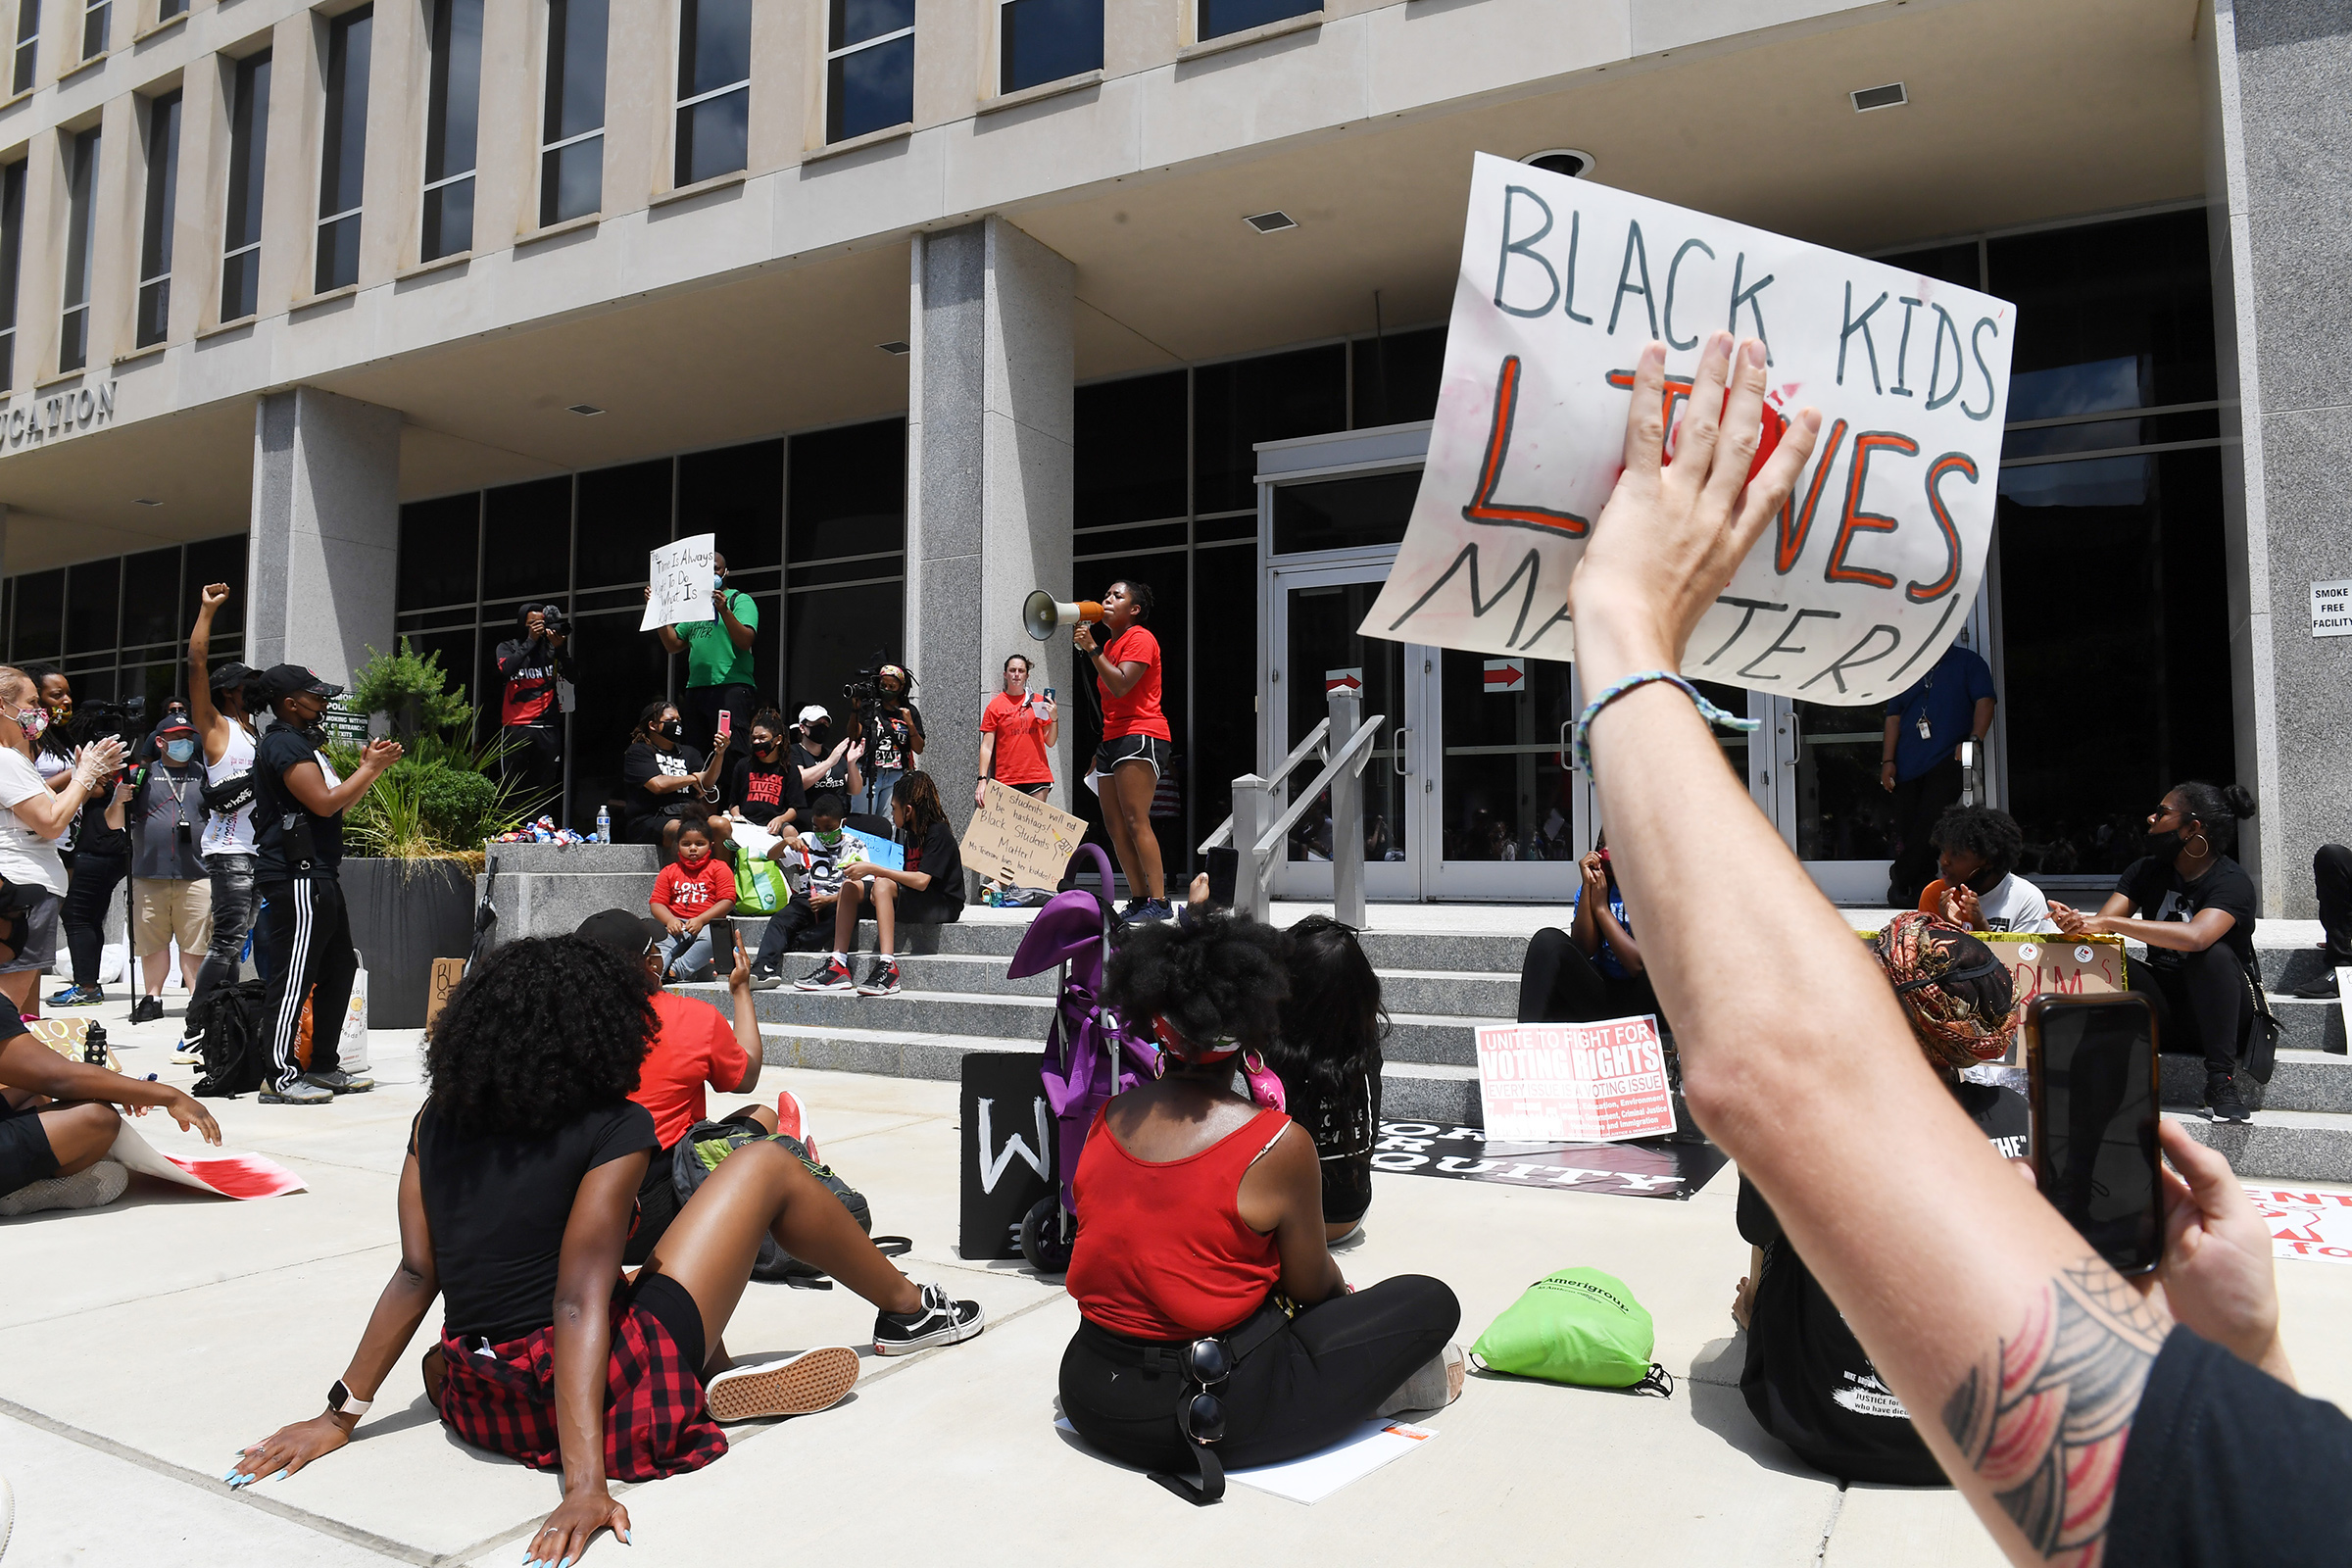 Demonstrators gather outside the U.S. Department of Education for the Black Students Matter march, organized by Educators for Equity on June 19 in Washington, DC.